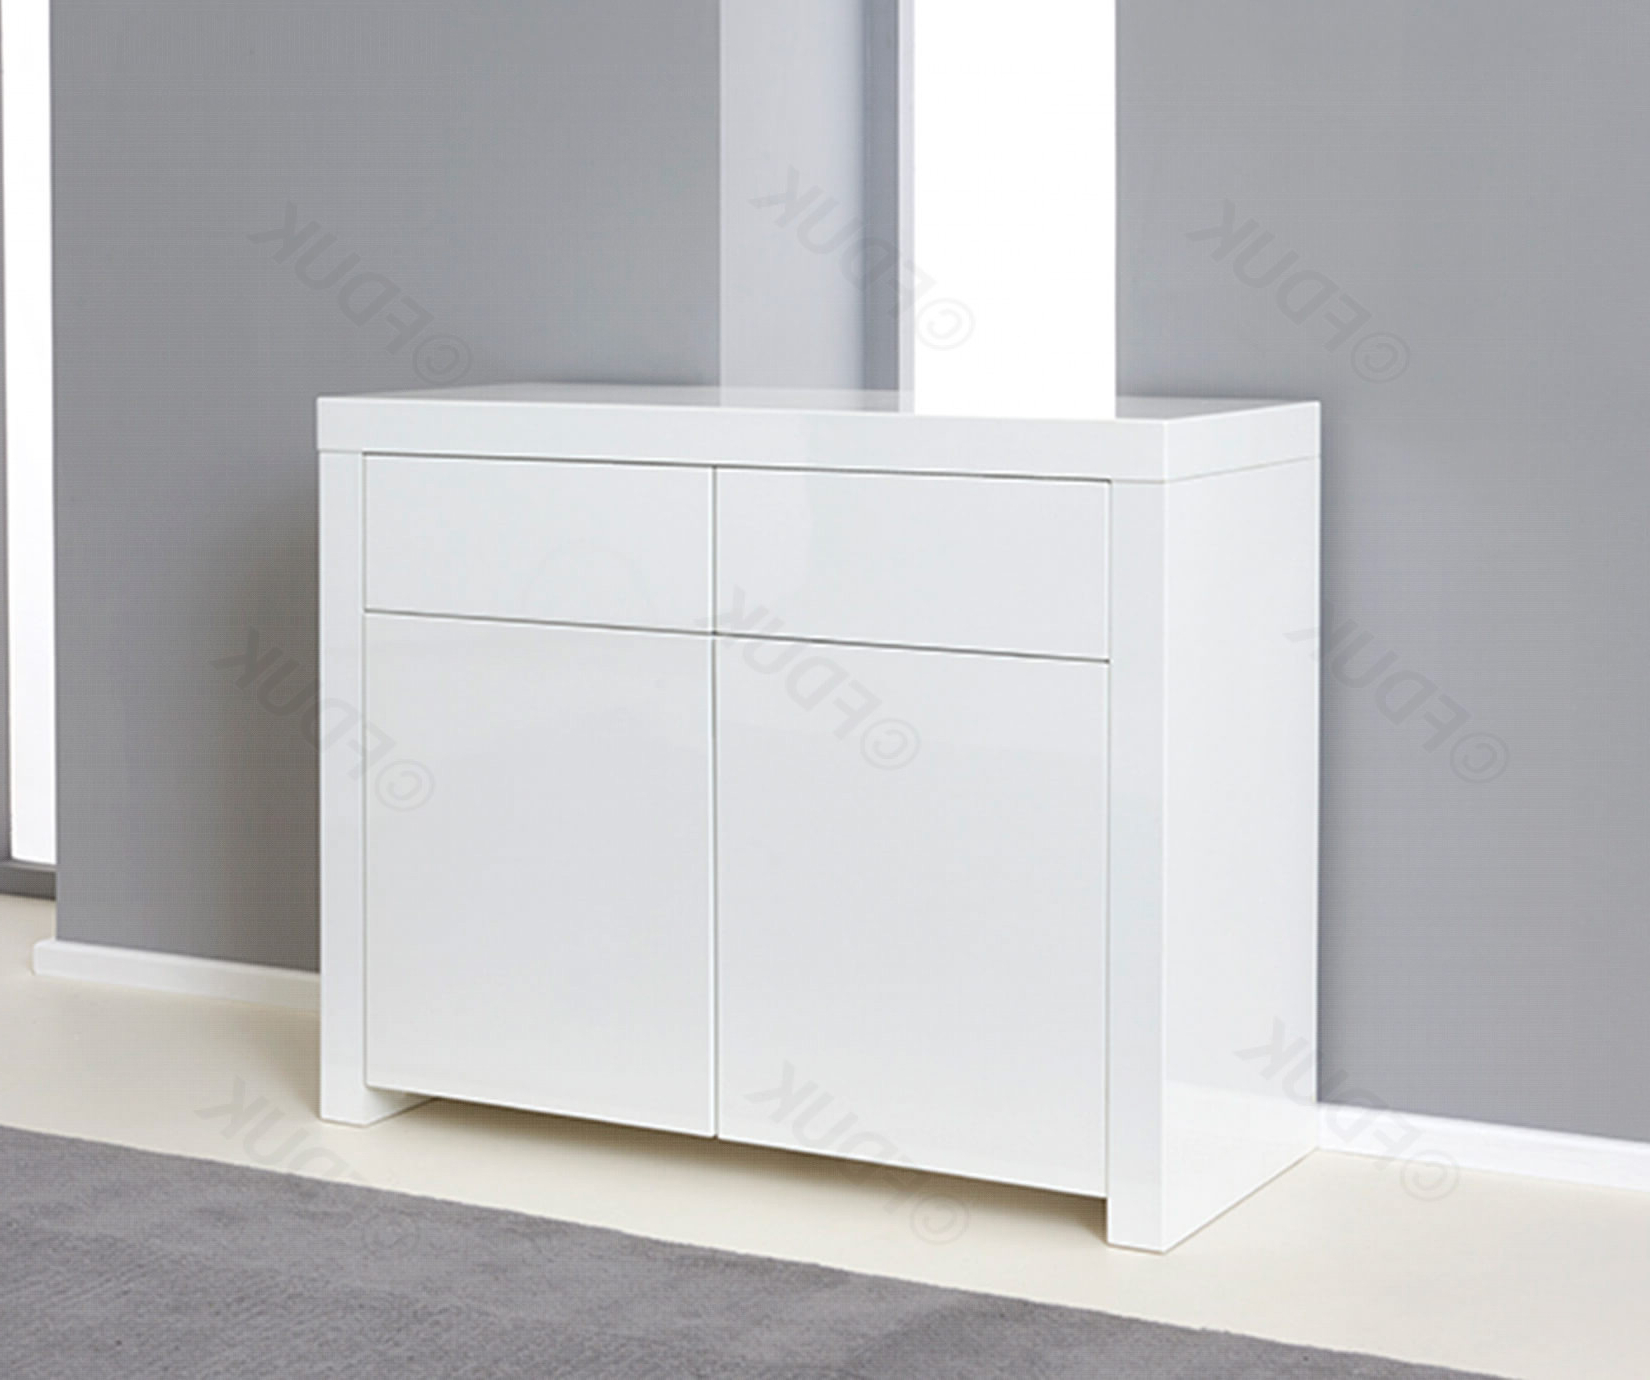 Widely Used Mark Harris Hereford 2 Door 2 Drawer White High Gloss Sideboard Pertaining To Malibu 2 Door 1 Drawer Sideboards (View 20 of 20)